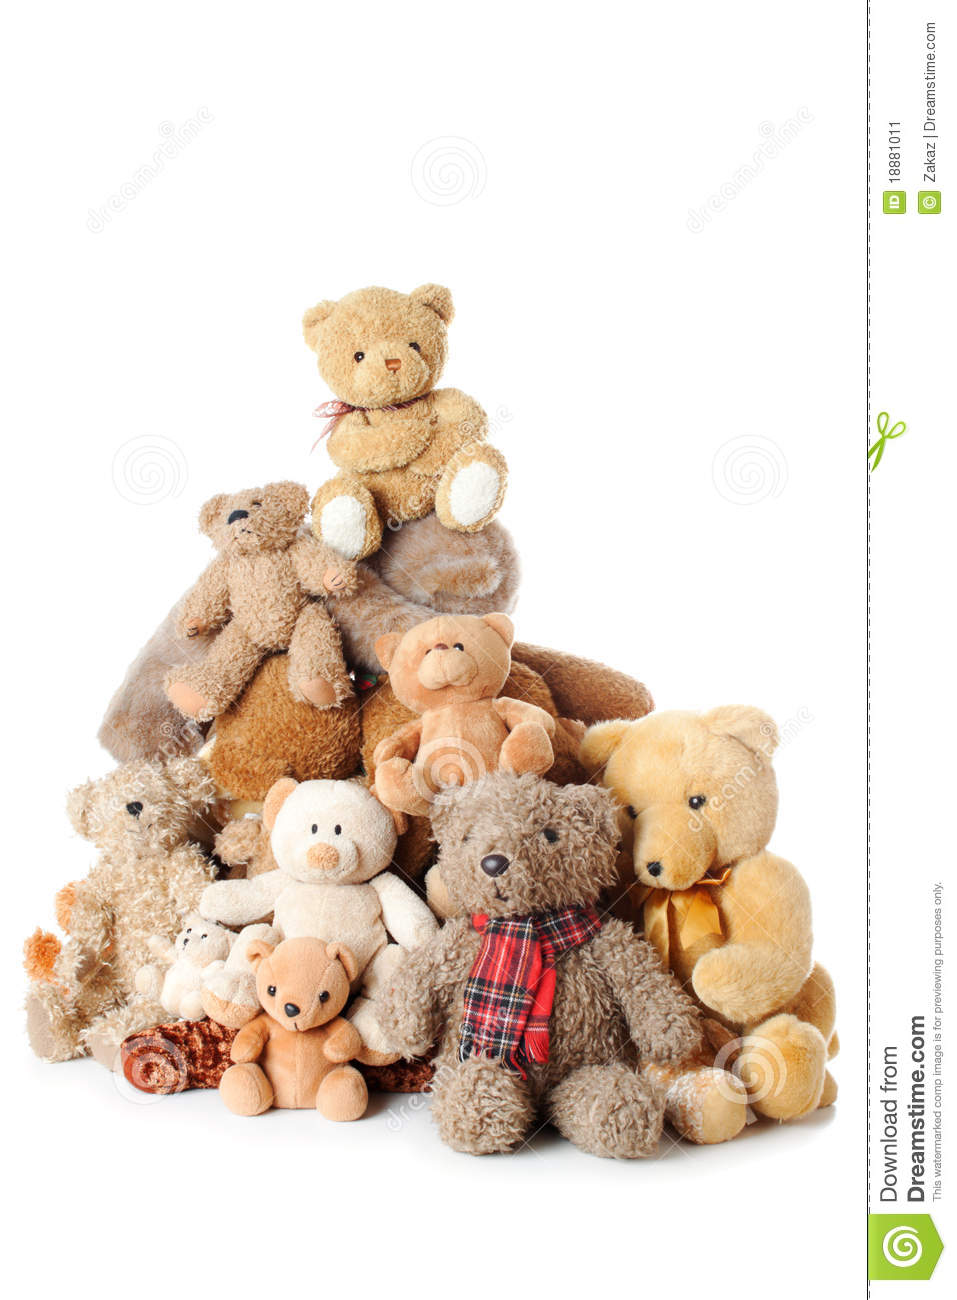 Pile Of Teddy Bears | Isolated Stock Image - Image of ...